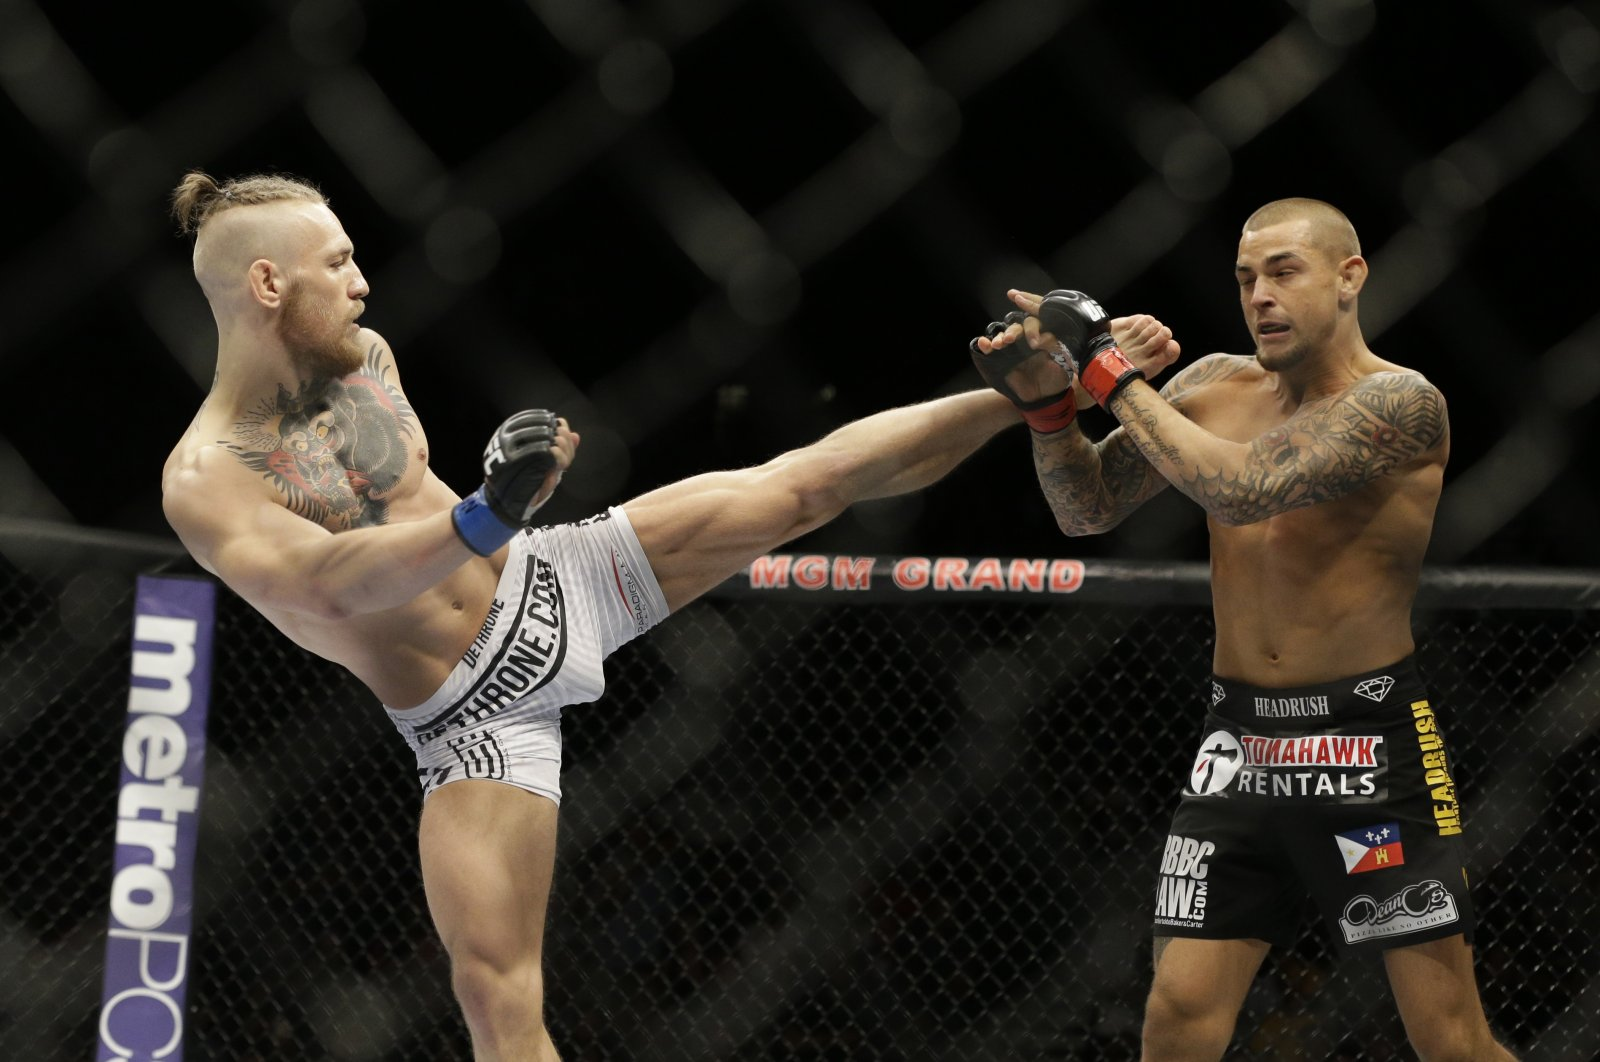 Conor McGregor (L) kicks Dustin Poirier during their mixed martial arts bout in Las Vegas, Nevada, Sept. 27, 2014.  McGregor returns from a year-long layoff for a rematch against Poirier in the promotions' first pay-per-view of the year, at UFC 257 on Jan. 24 in Abu Dhabi. (AP Photo)